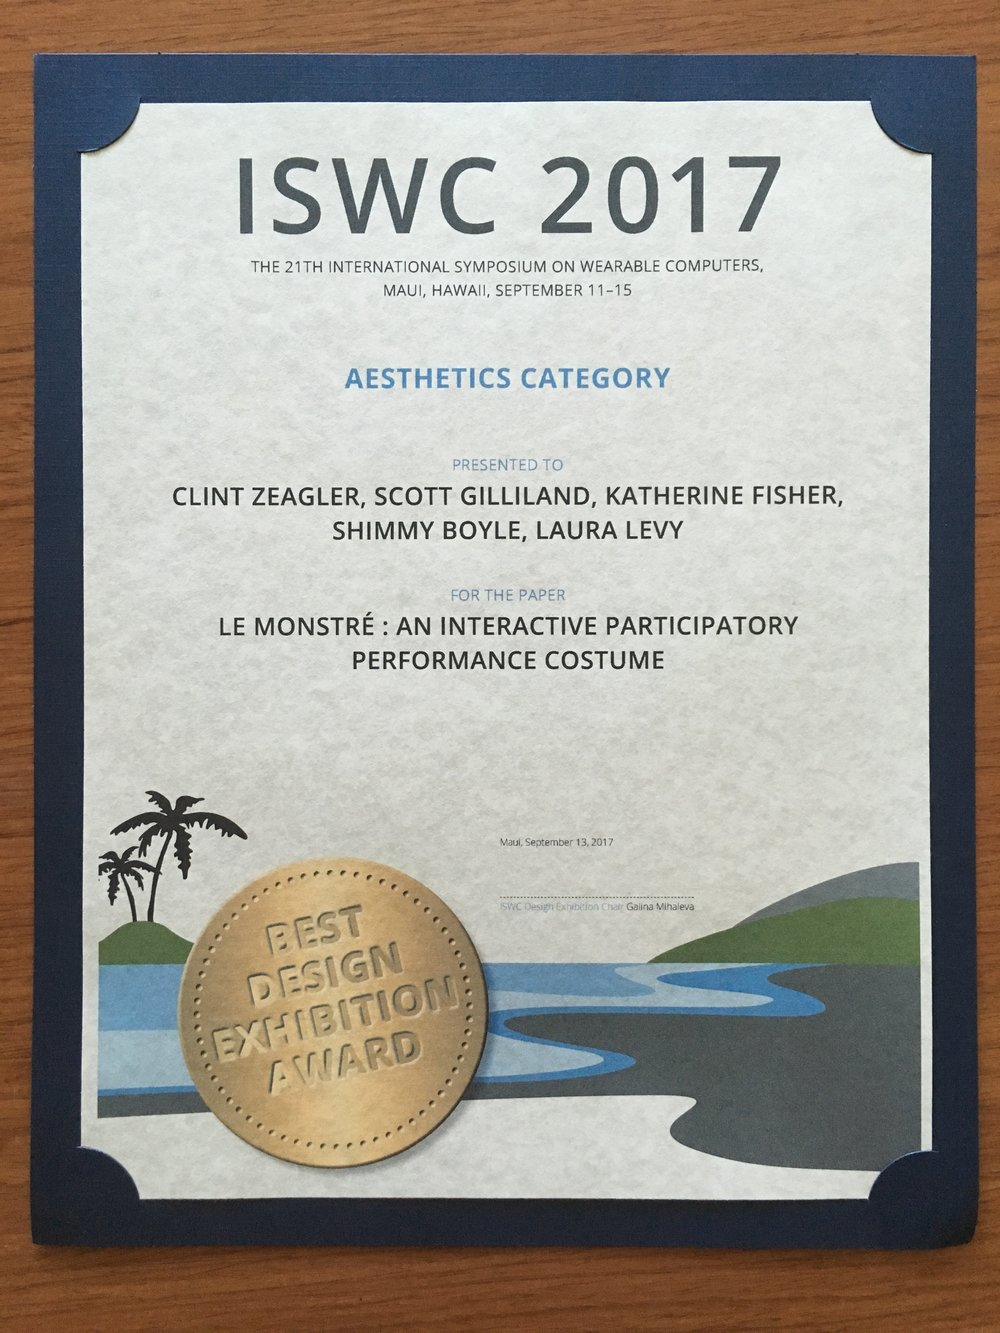 Our Creative Collisions project won Best Paper and Juried Design Competition at the 2017 International Symposium on Wearable Computers